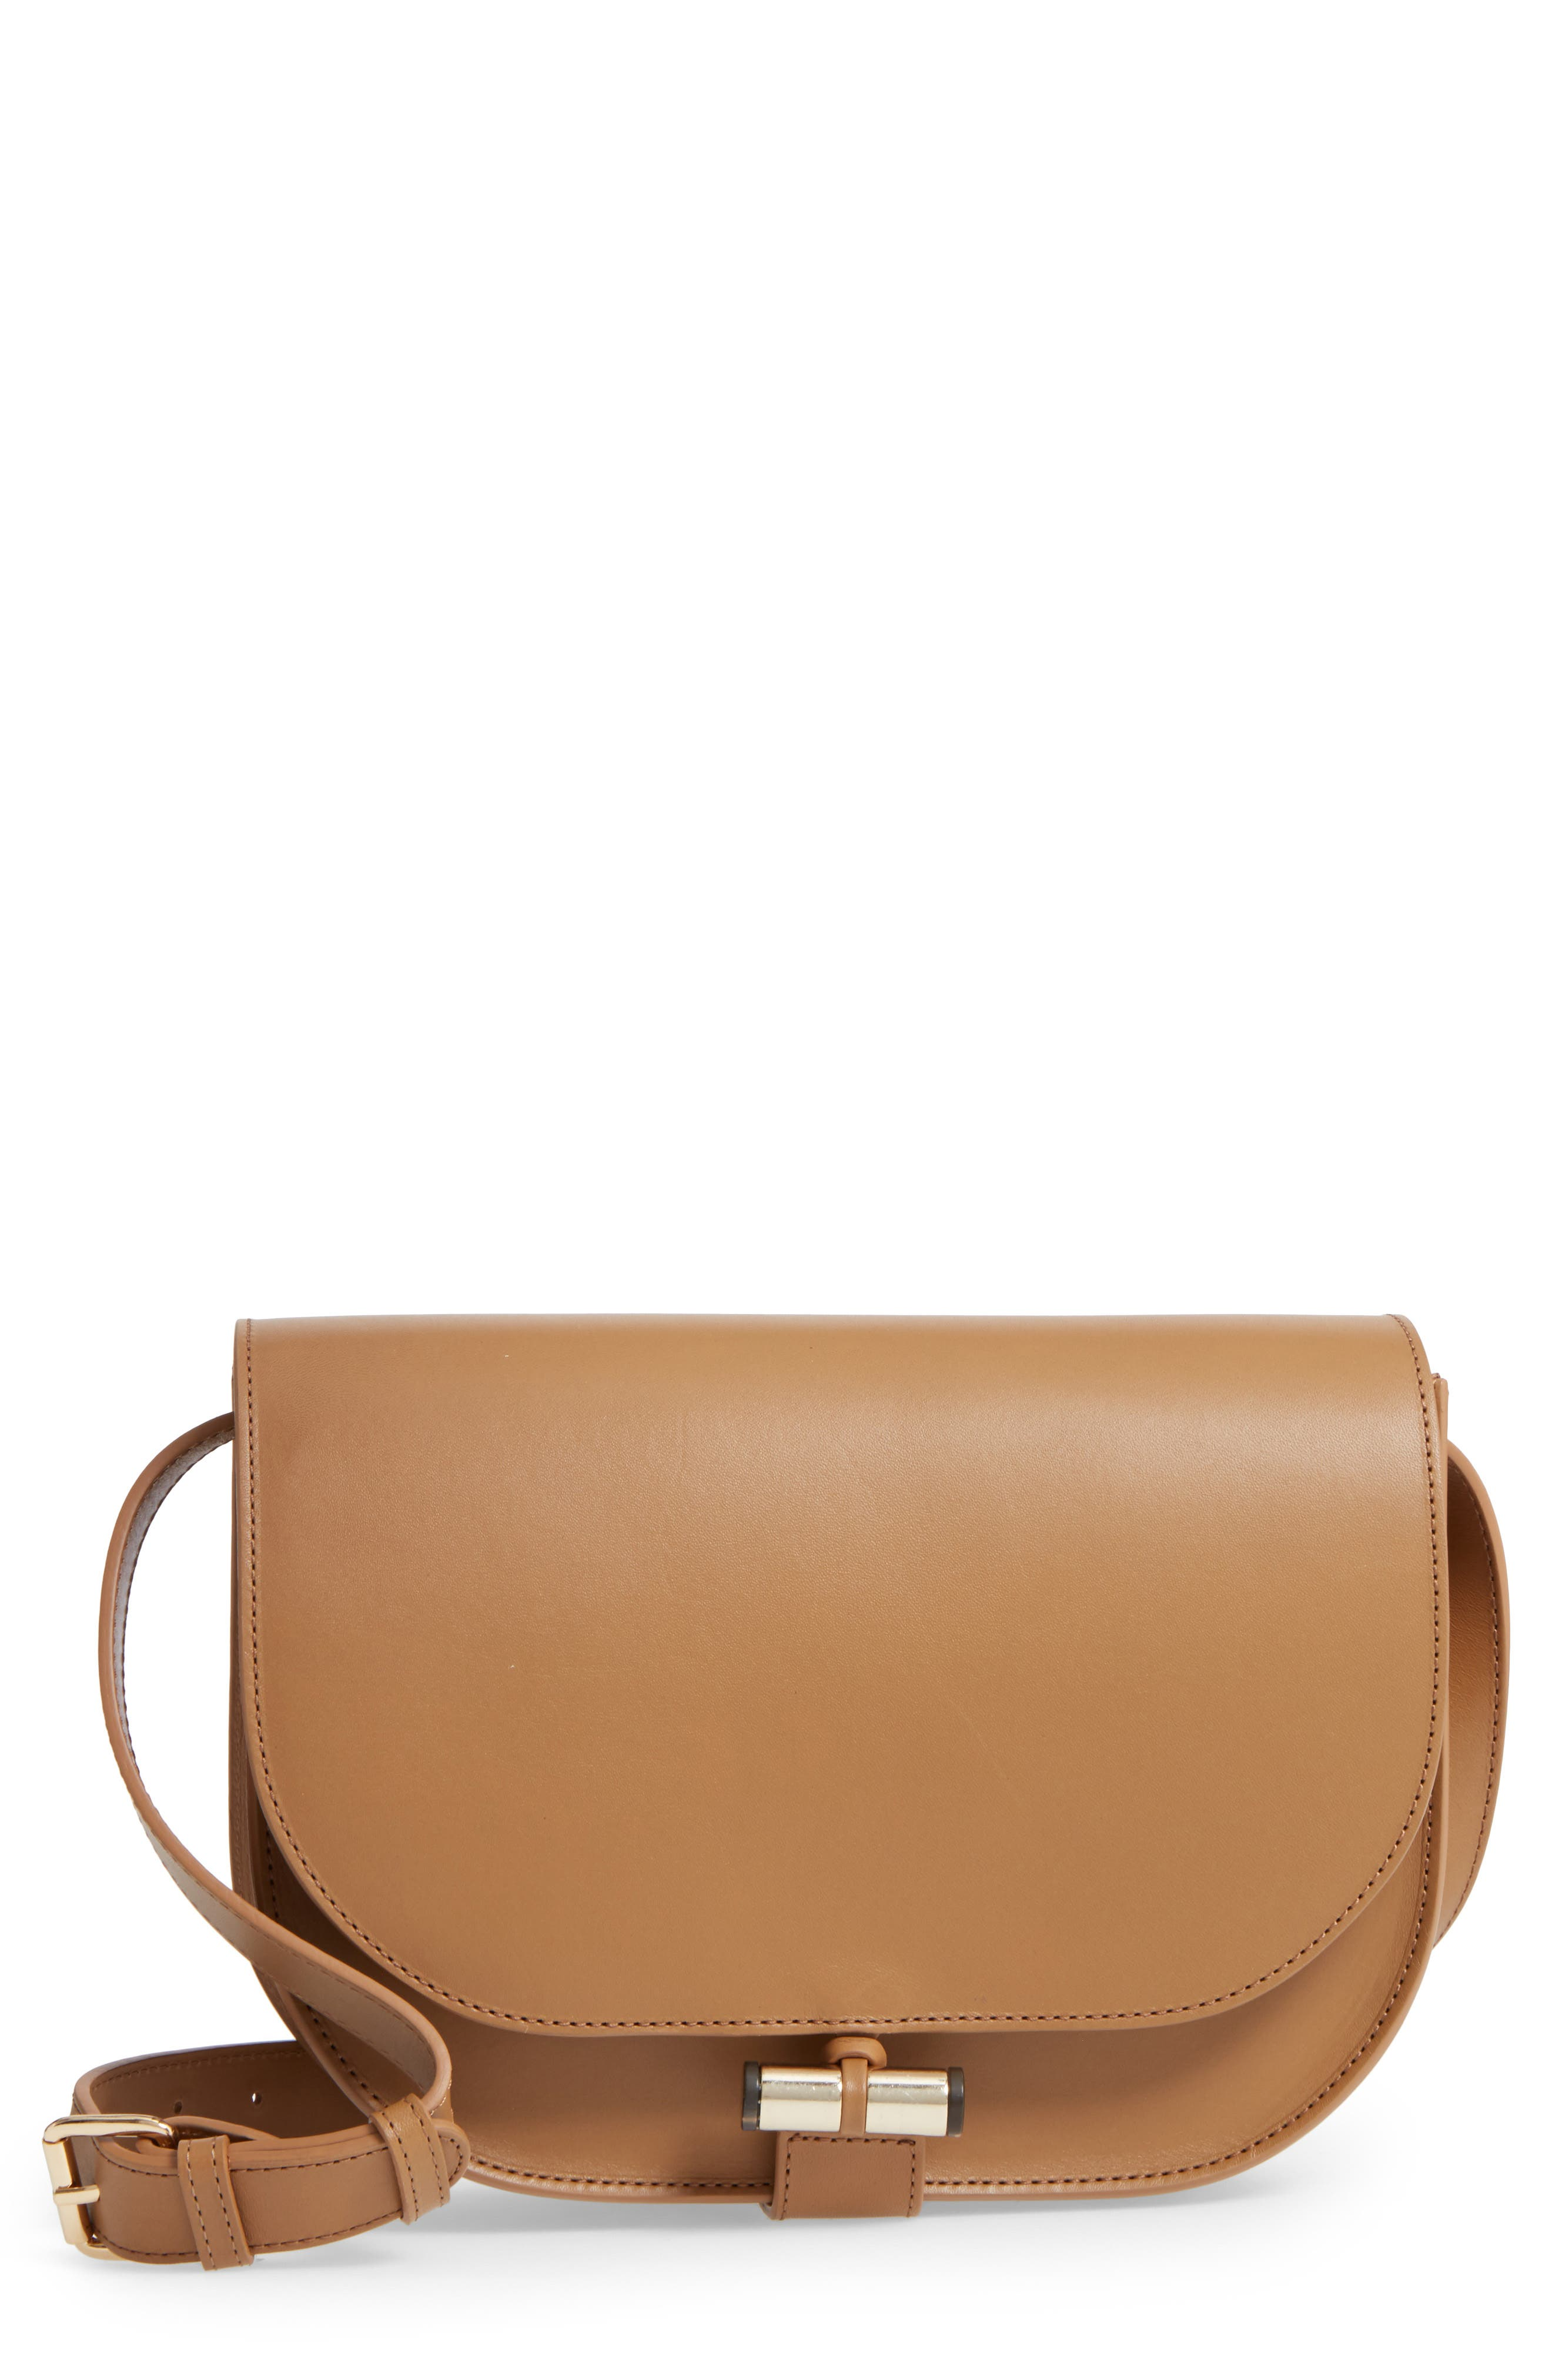 A.P.C. June Calfskin Leather Shoulder Bag